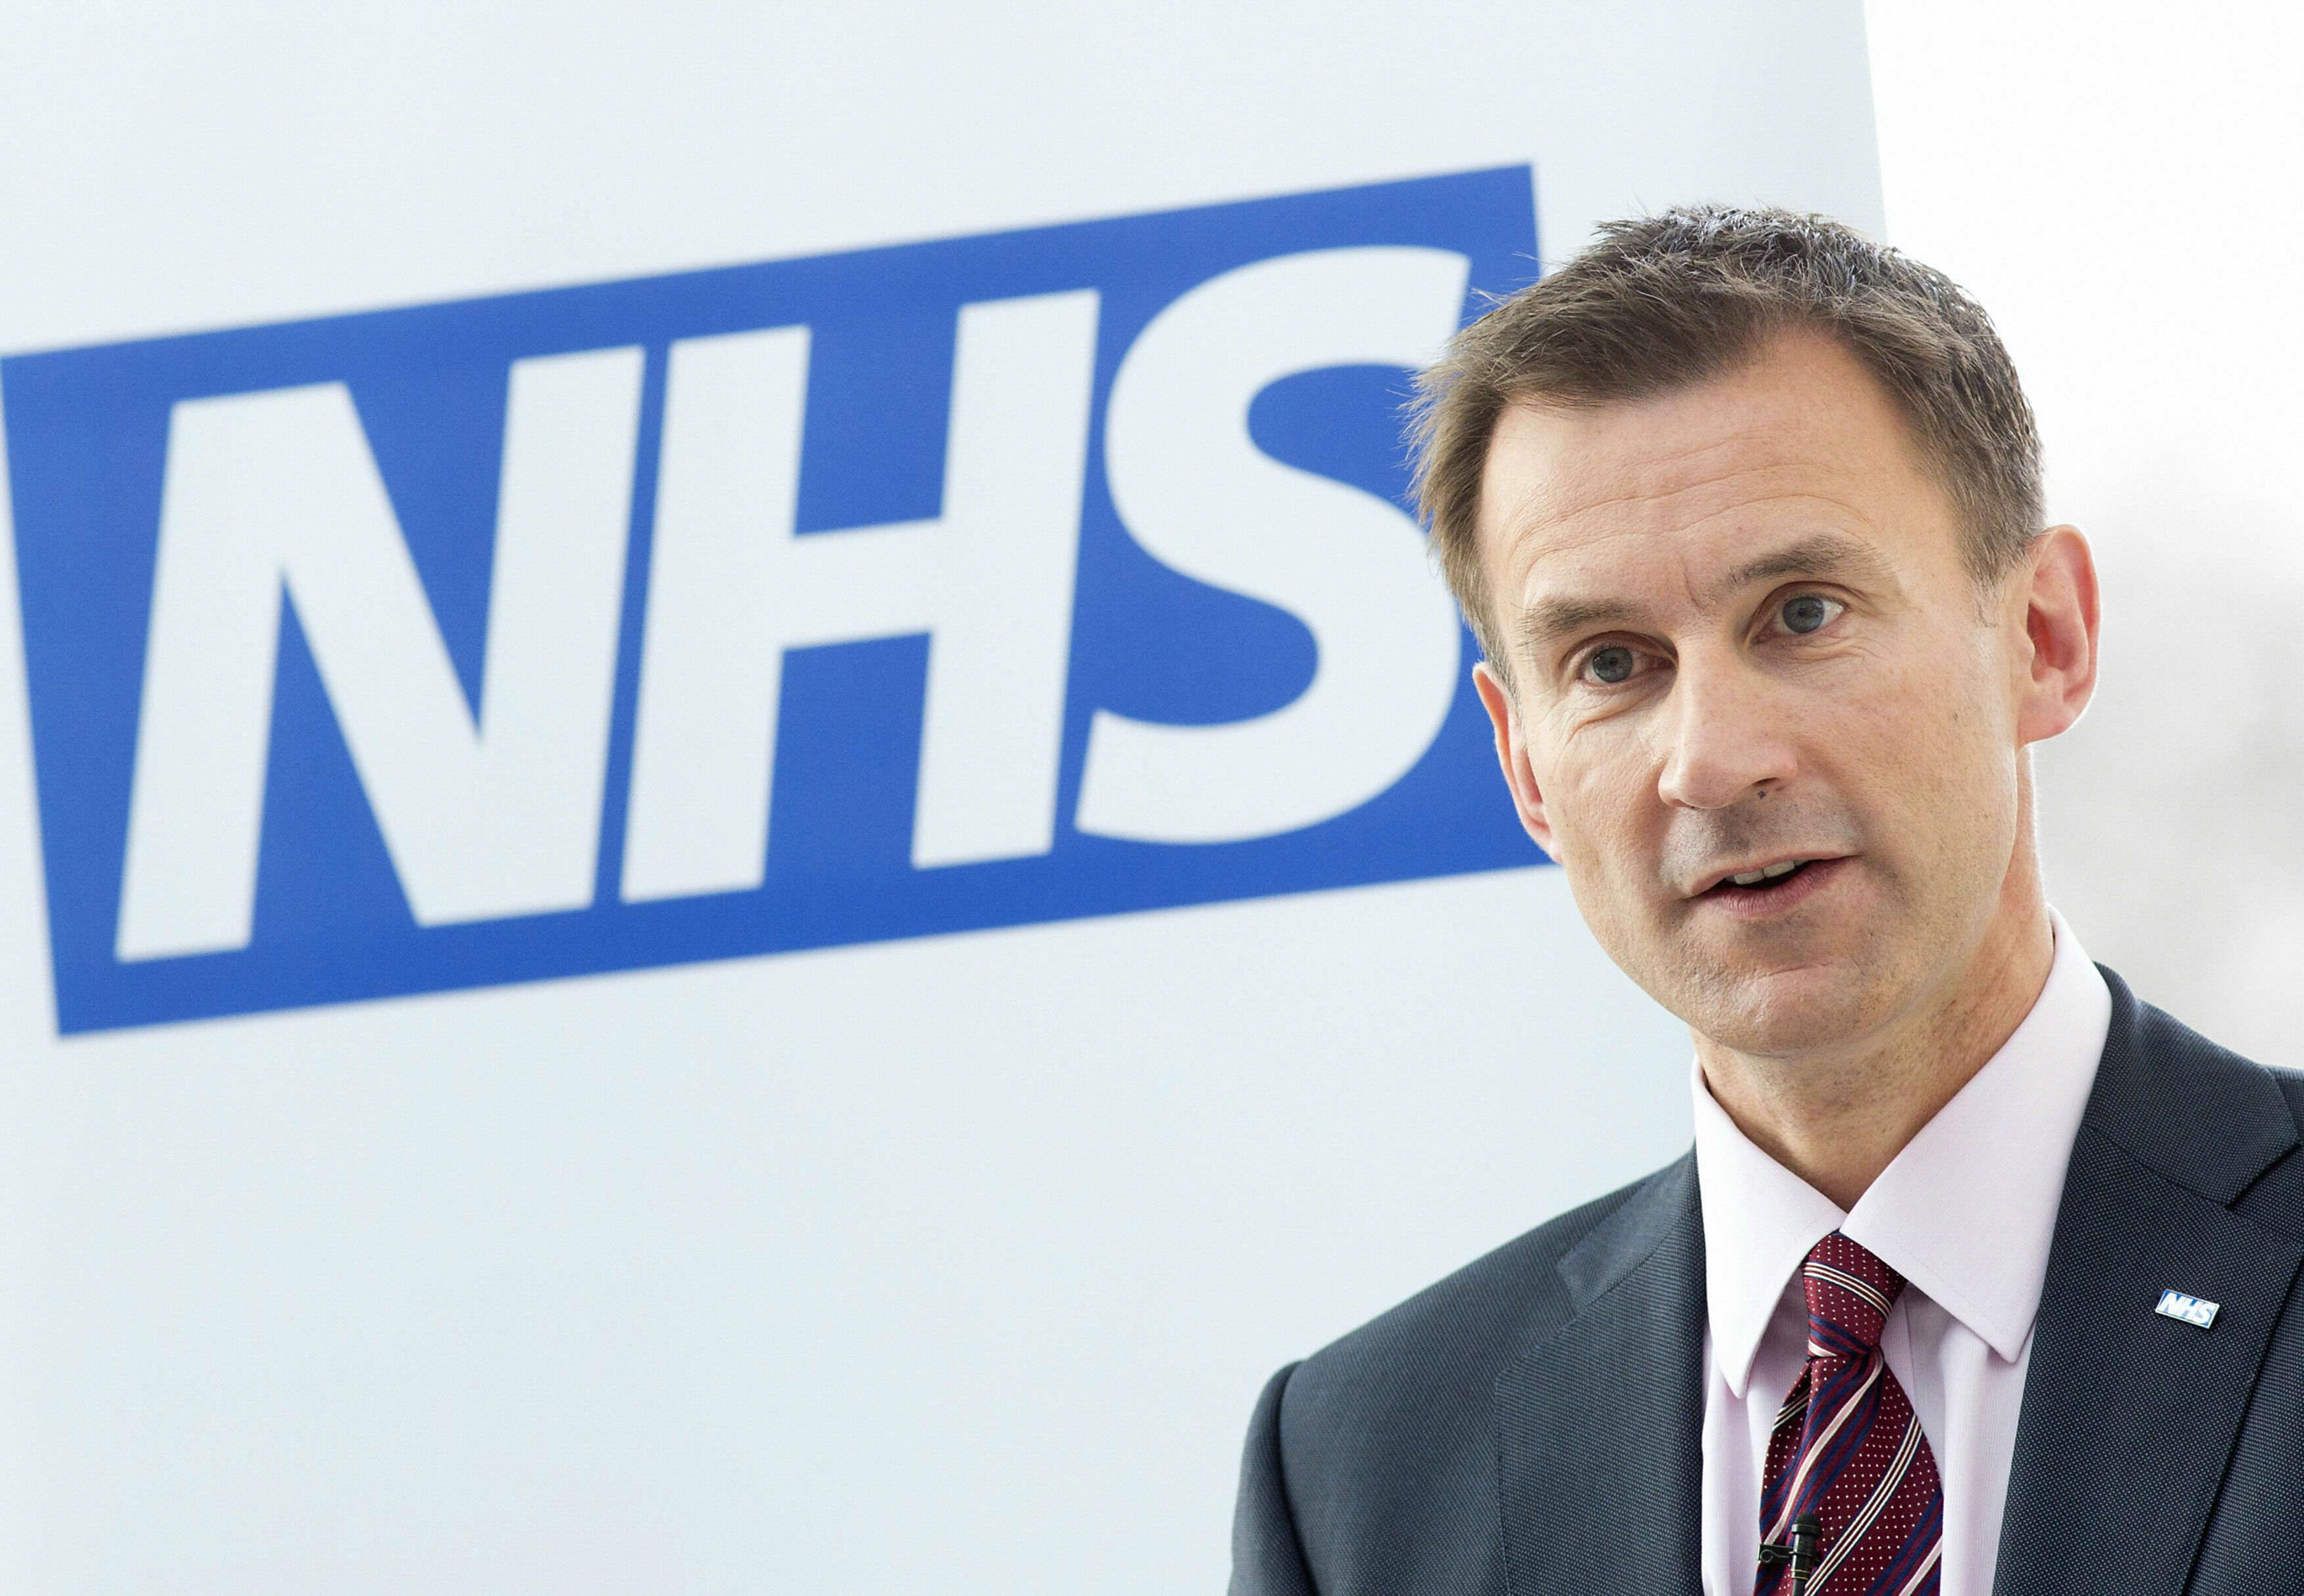 Jeremy Hunt Forces New Contract On Junior Doctors To End Pay Row PA 25487005